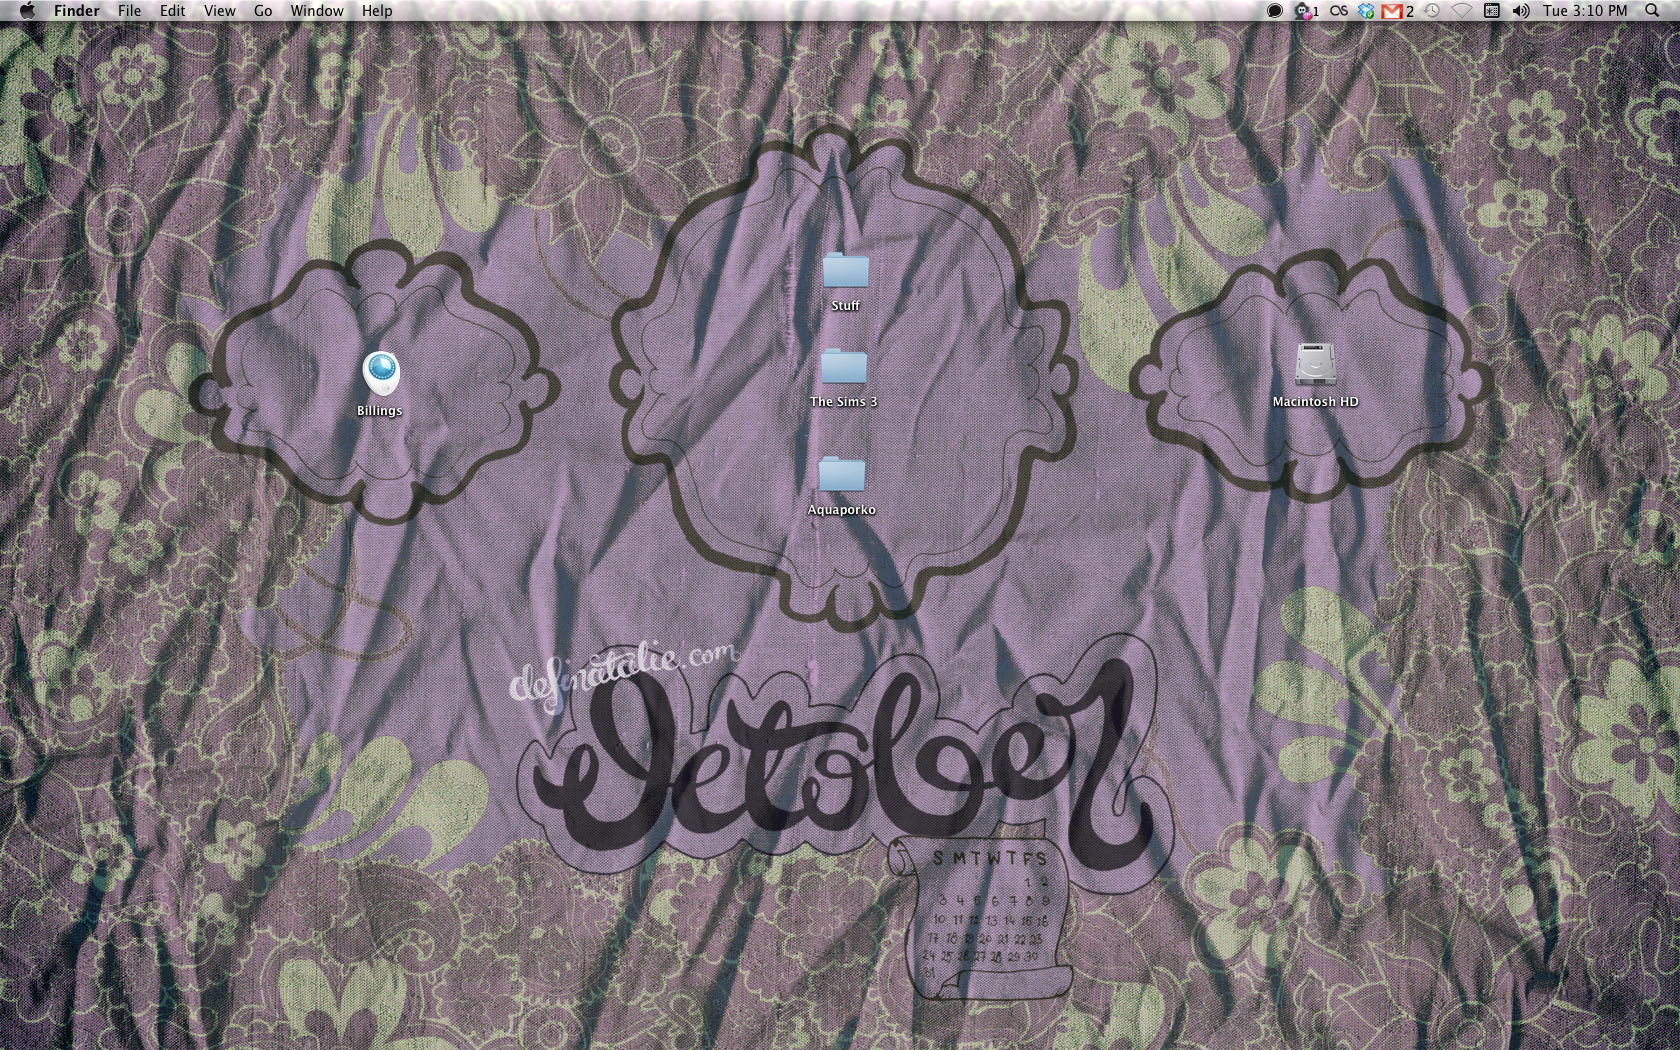 The preview of my desktop for October in action - Purple scrunched up silk with pale green paisley doodling around the borders and October written in chunky script.